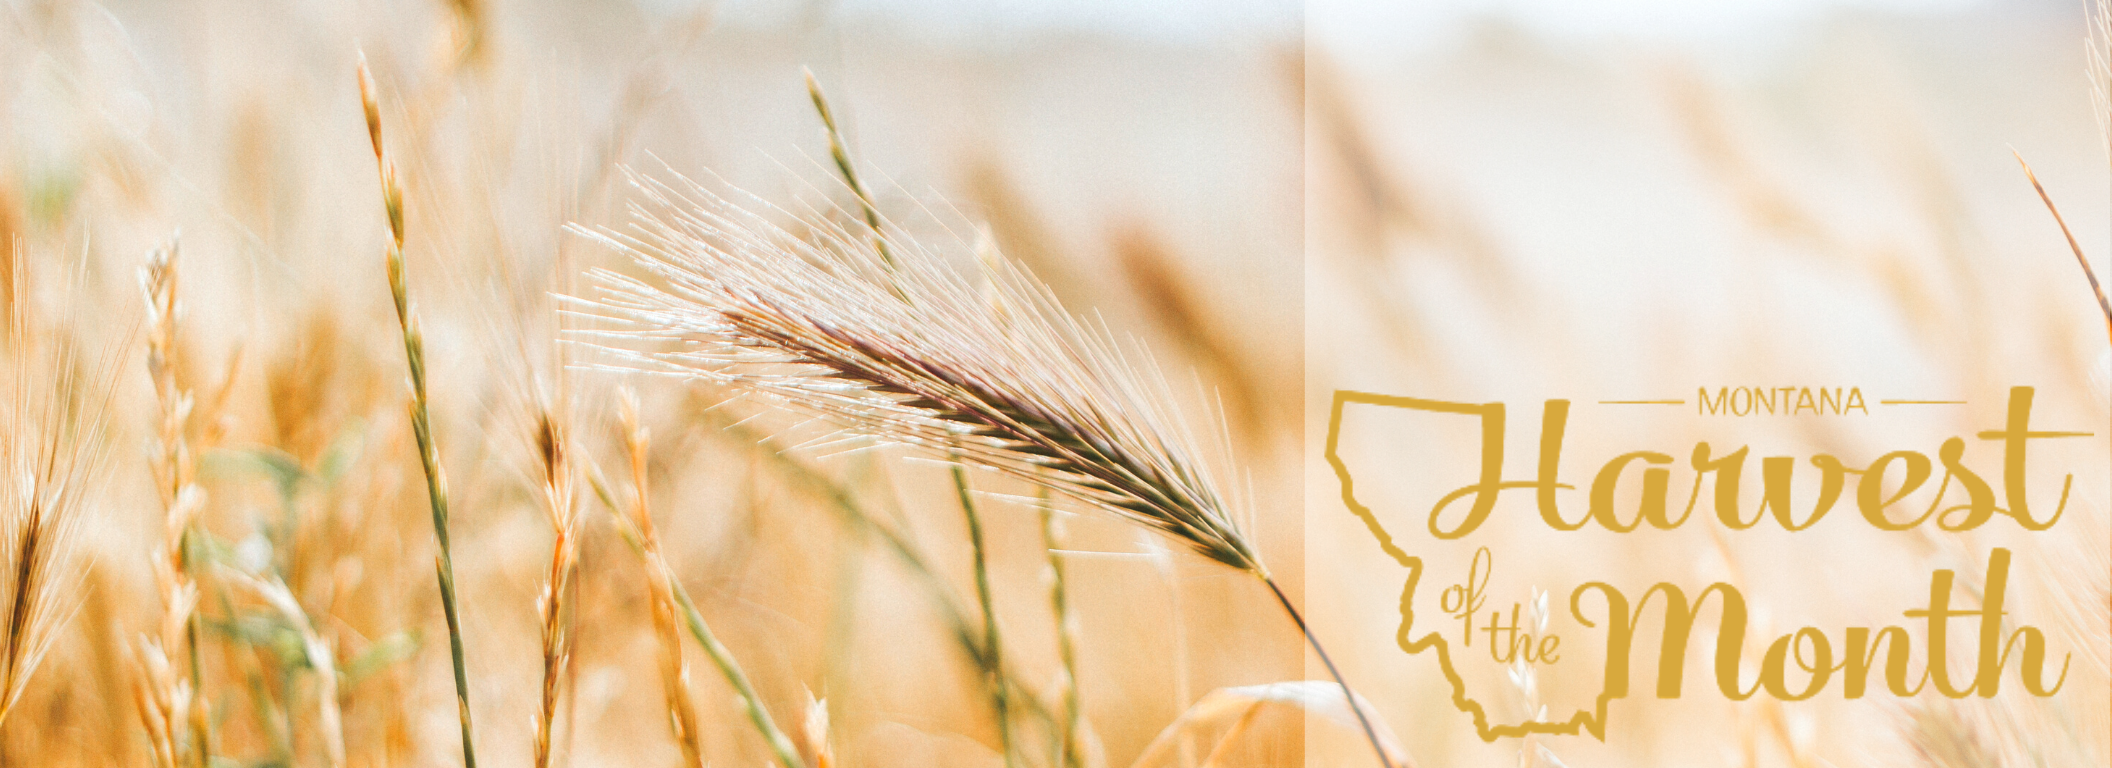 Photo of wheat with Harvest of the Month logo.